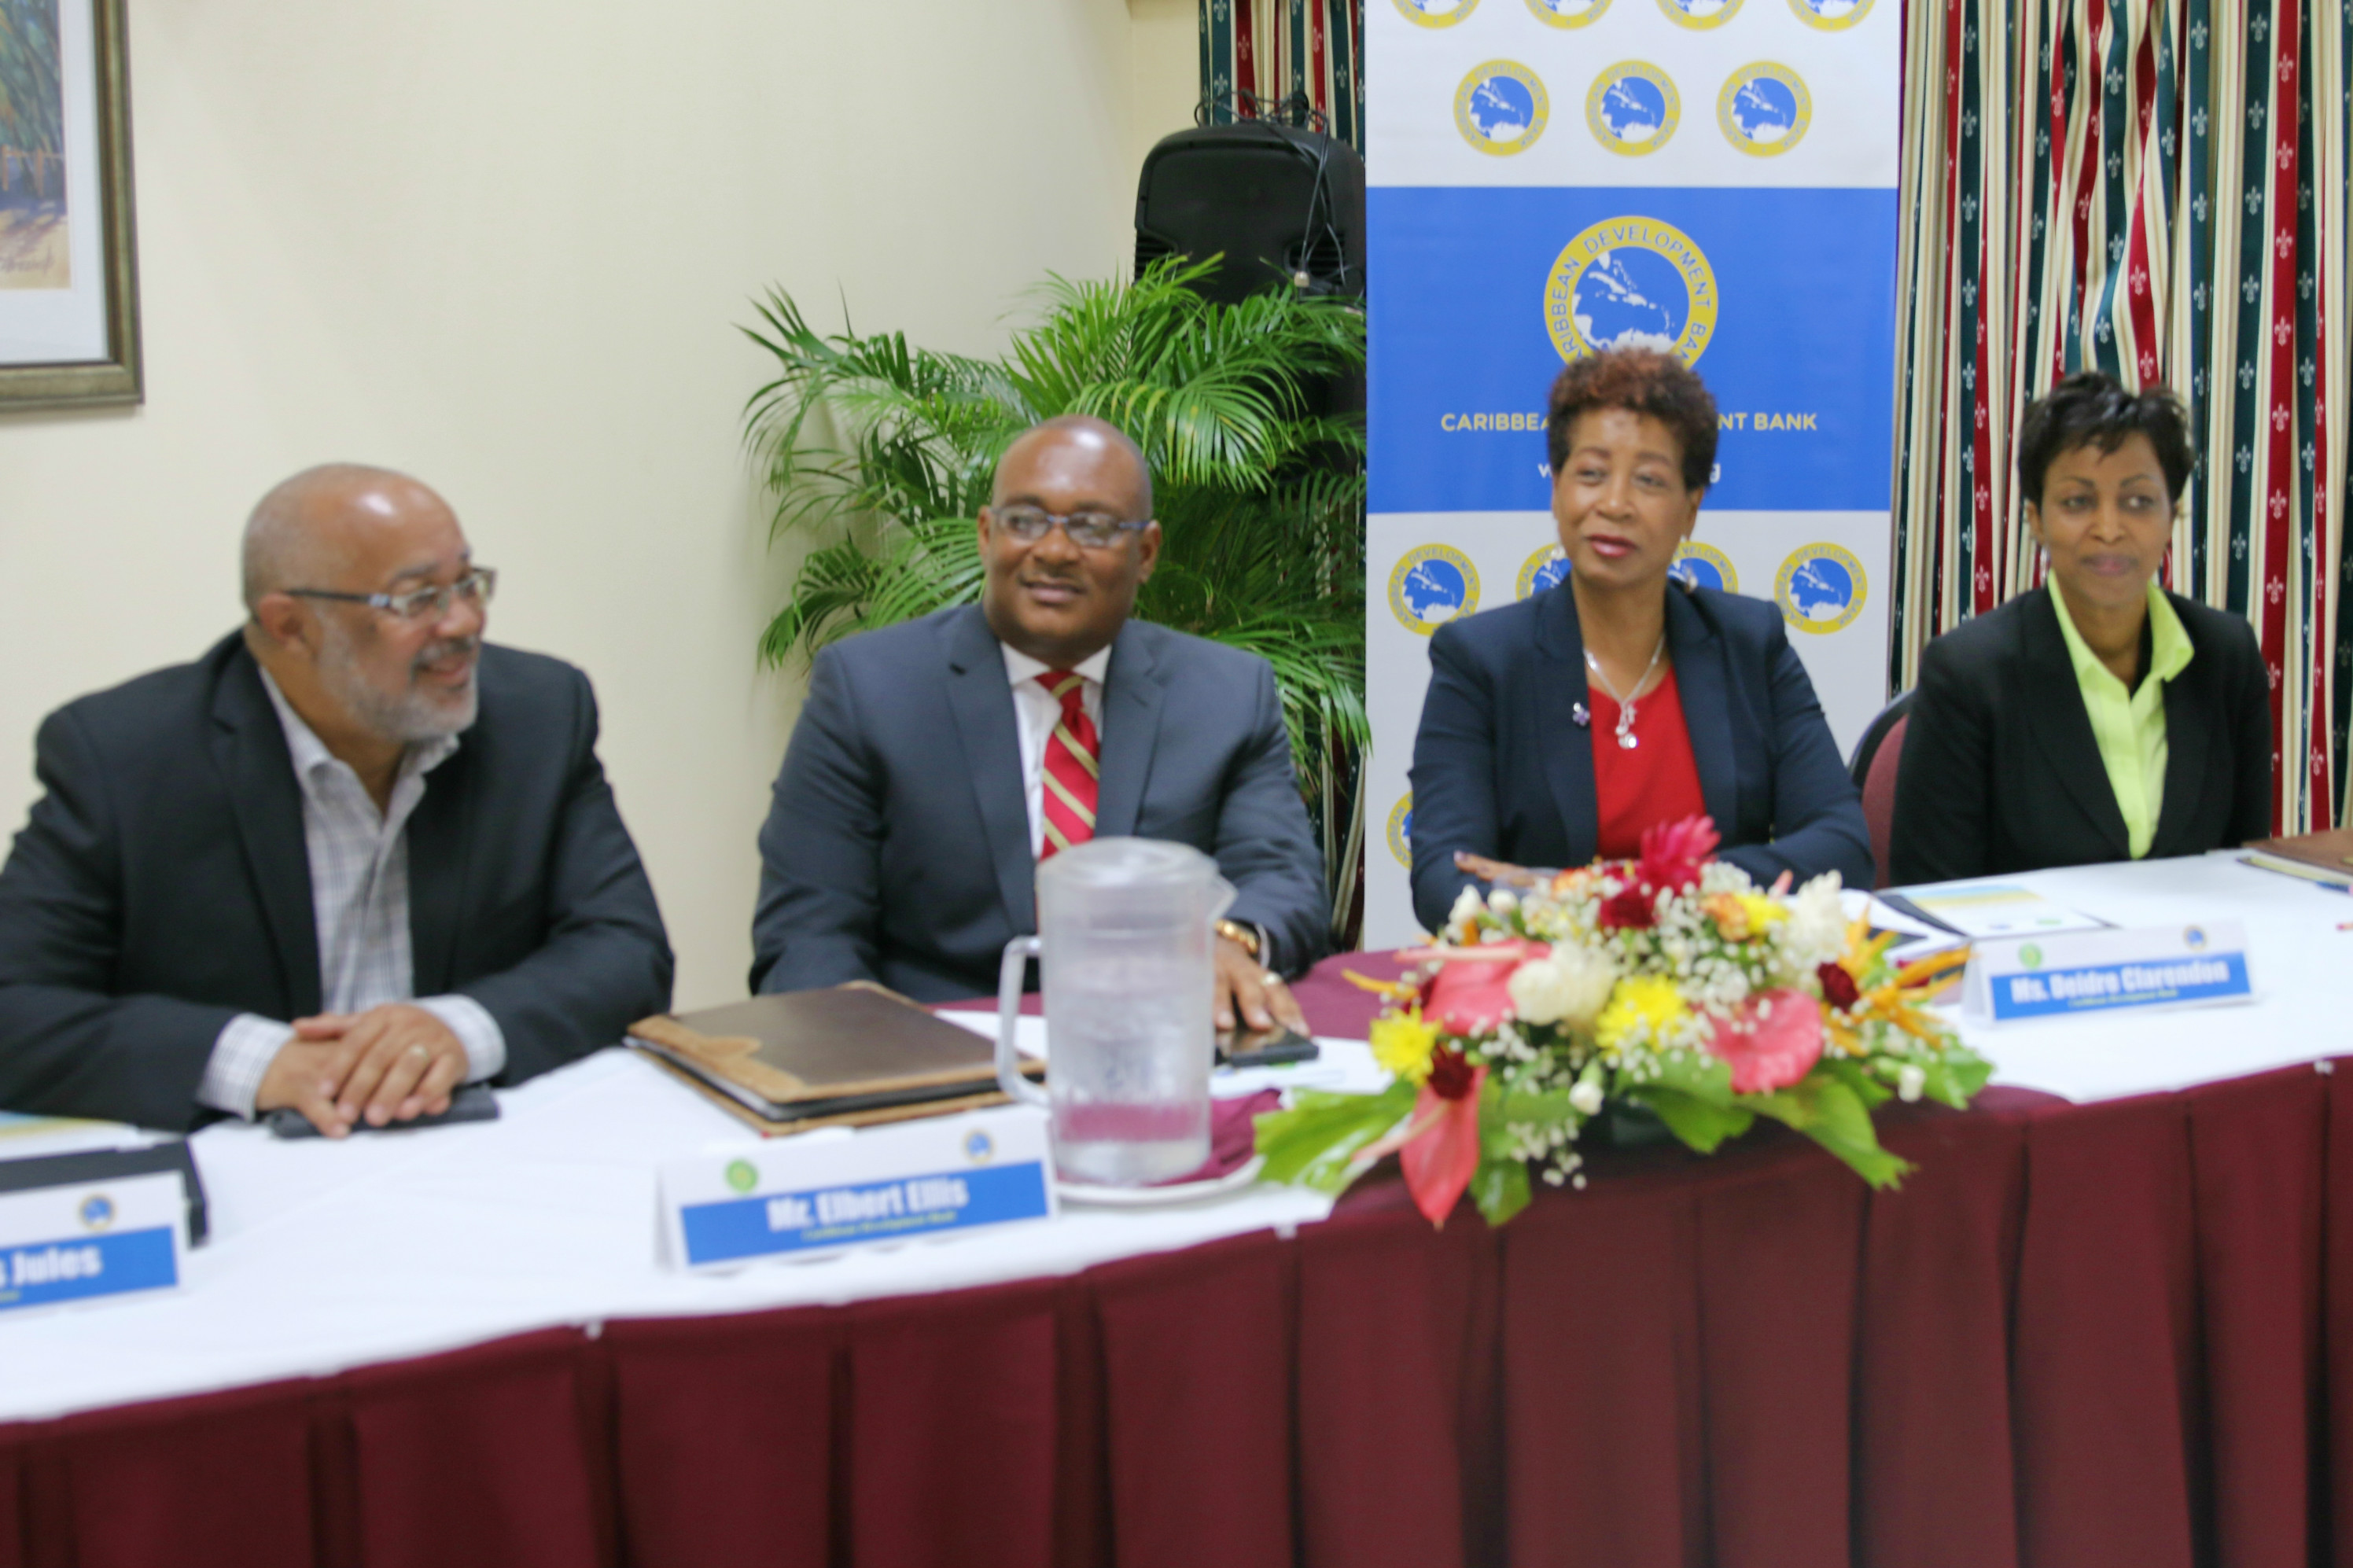 Officials during the launch of the Enhanced Country Poverty Assessment Programme in Saint Lucia on July 26, 2016. Left to right: Dr. Didacus Jules, Director General, OECS Commission; Elbert Ellis, Operations Officer (Social Analyst), CDB; Deidre Clar